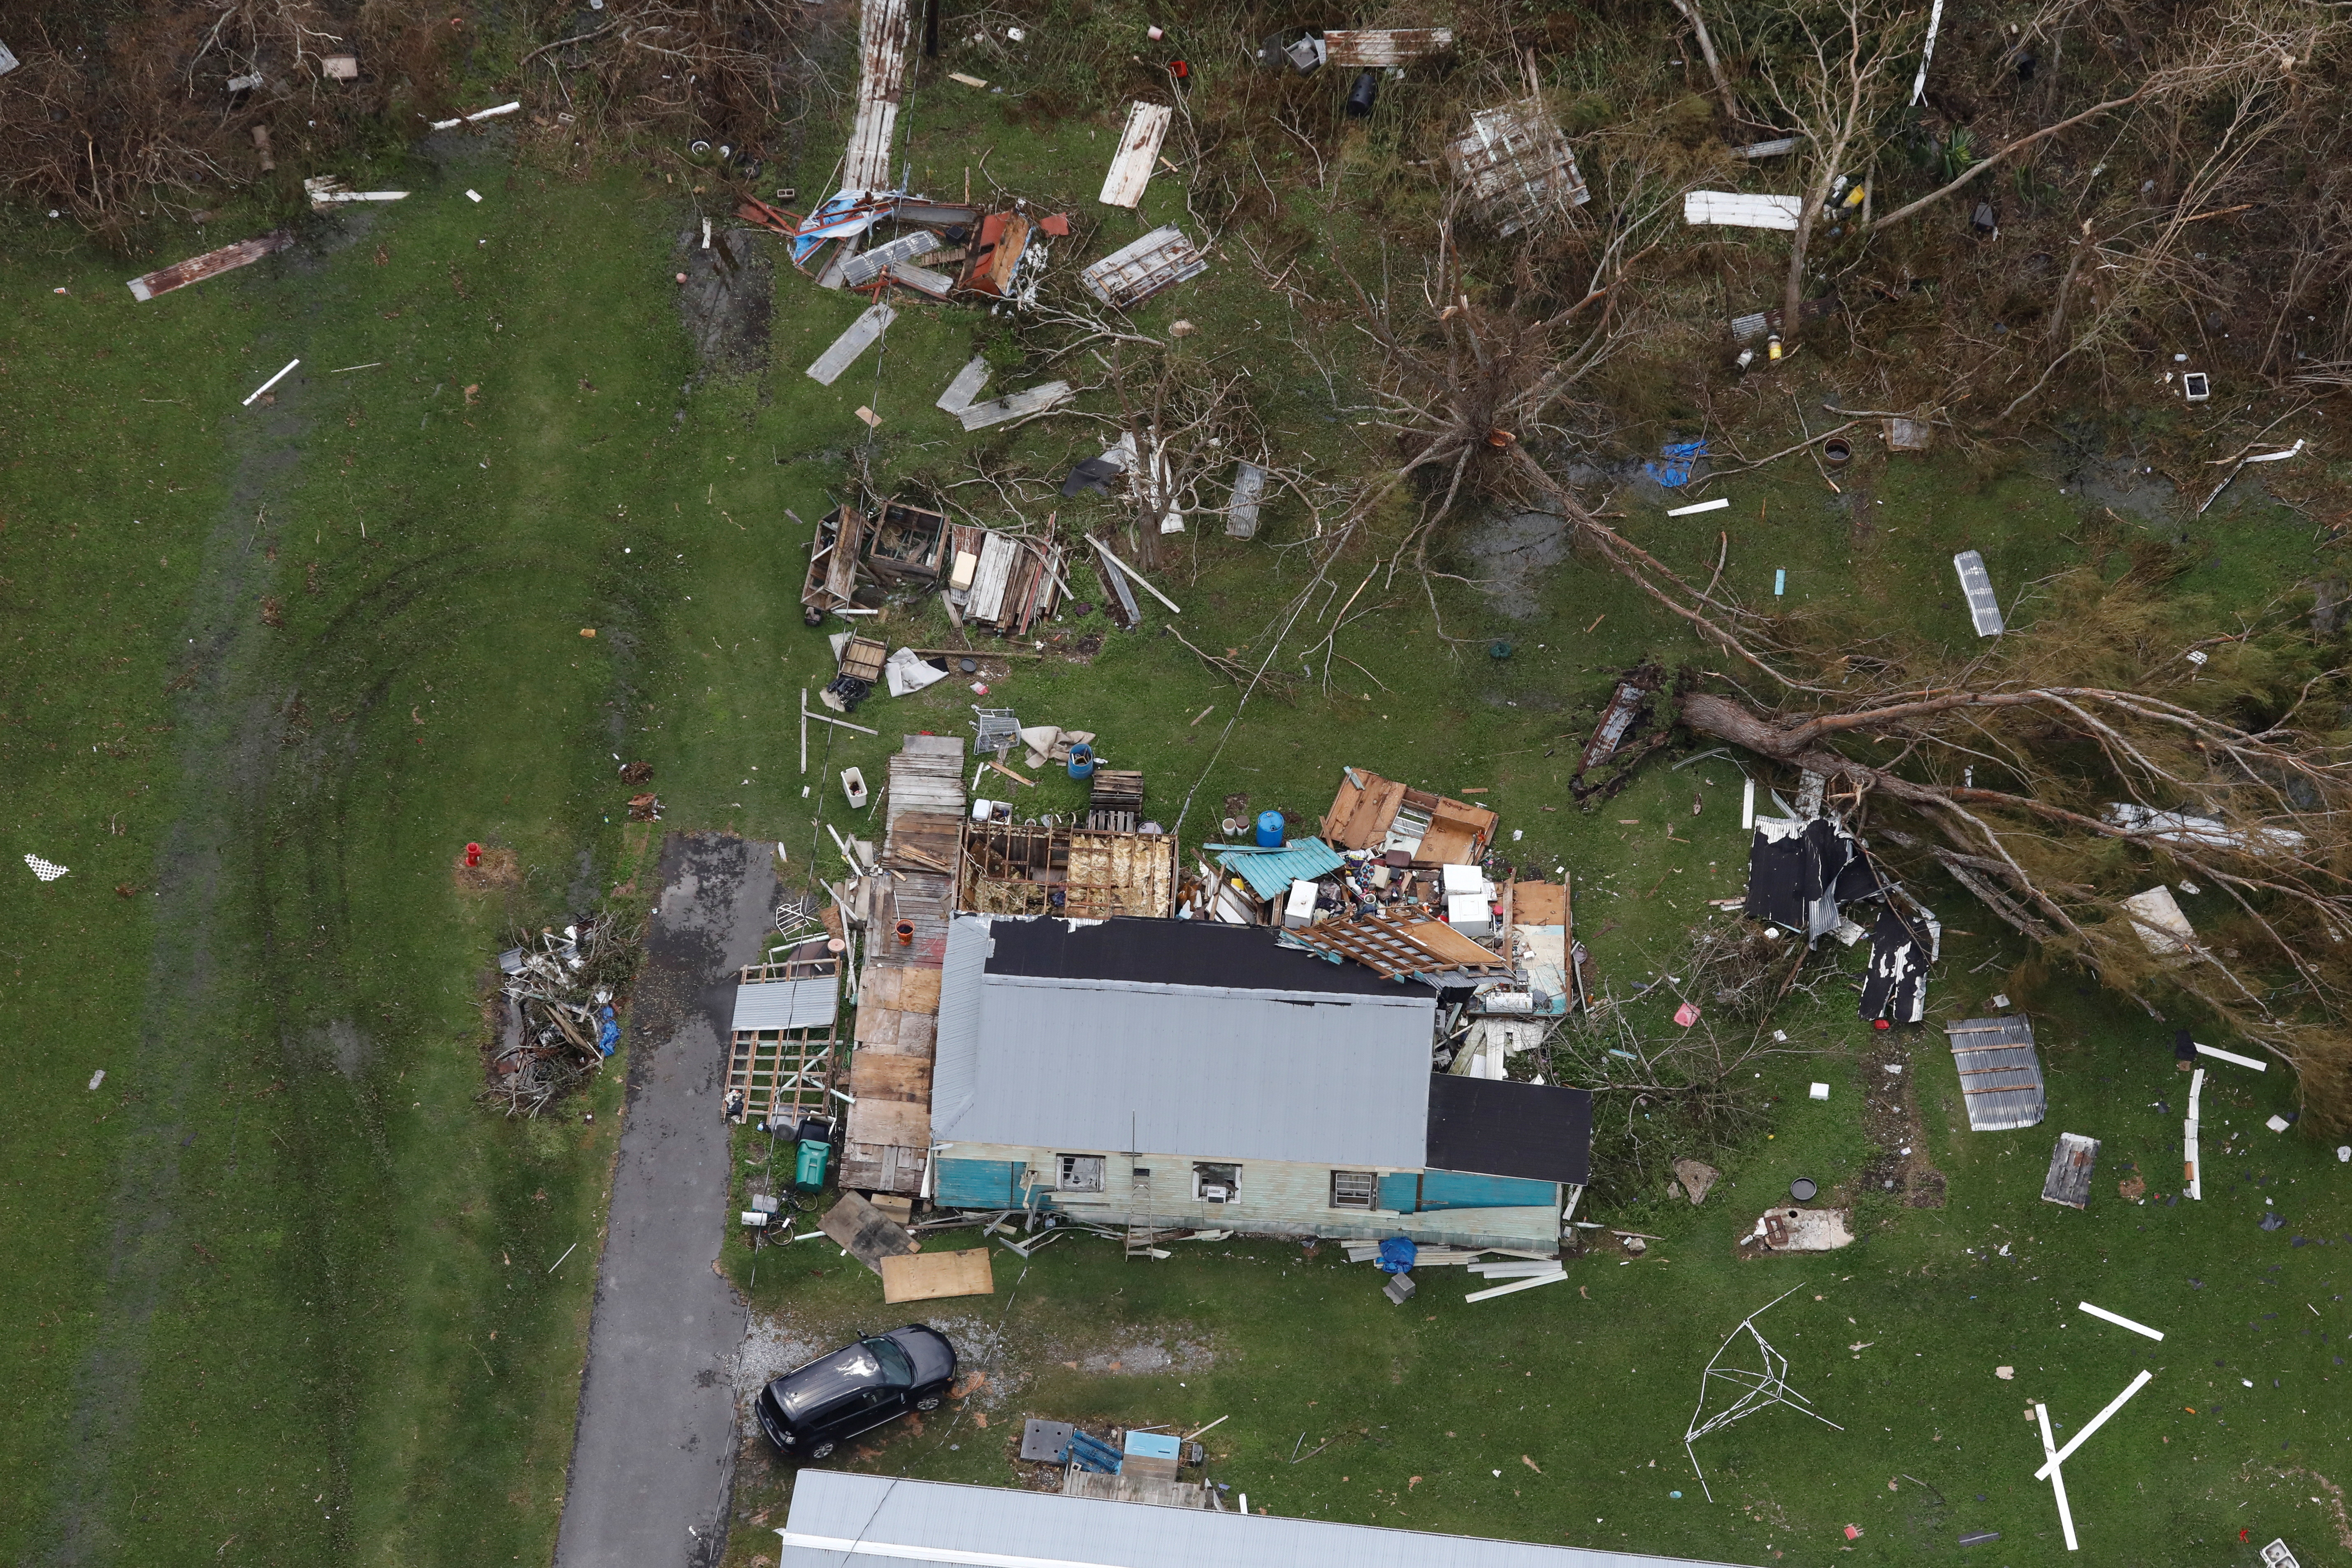 an aerial view shows destroyed houses after Hurricane Ida made landfall in Louisiana, in Cut Off, Louisiana U.S. August 31, 2021